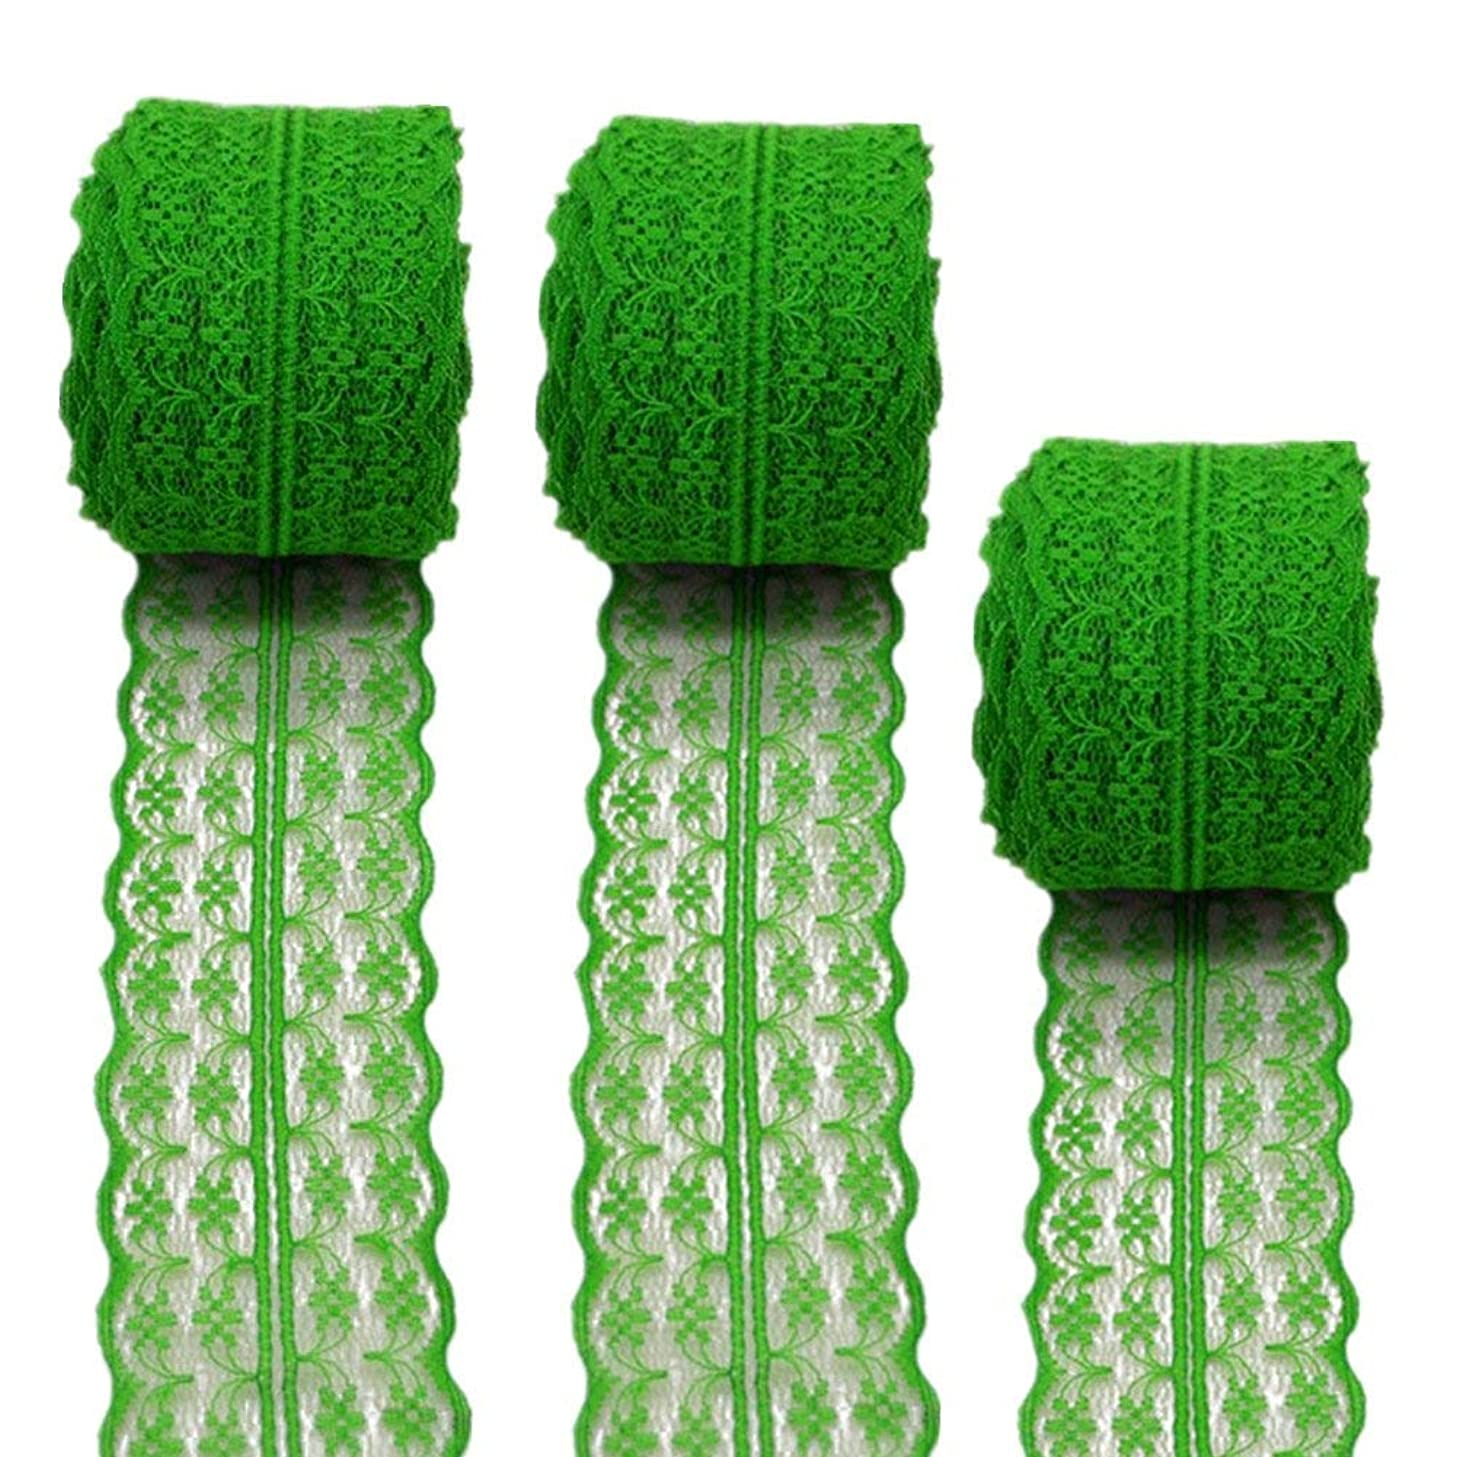 3 Rolls 10 Yards Floral Lace Ribbon Lace Trim Webbing Fabric for DIY Jewelry Making Craft Clothes Accessories Gift Wrapping (Green)